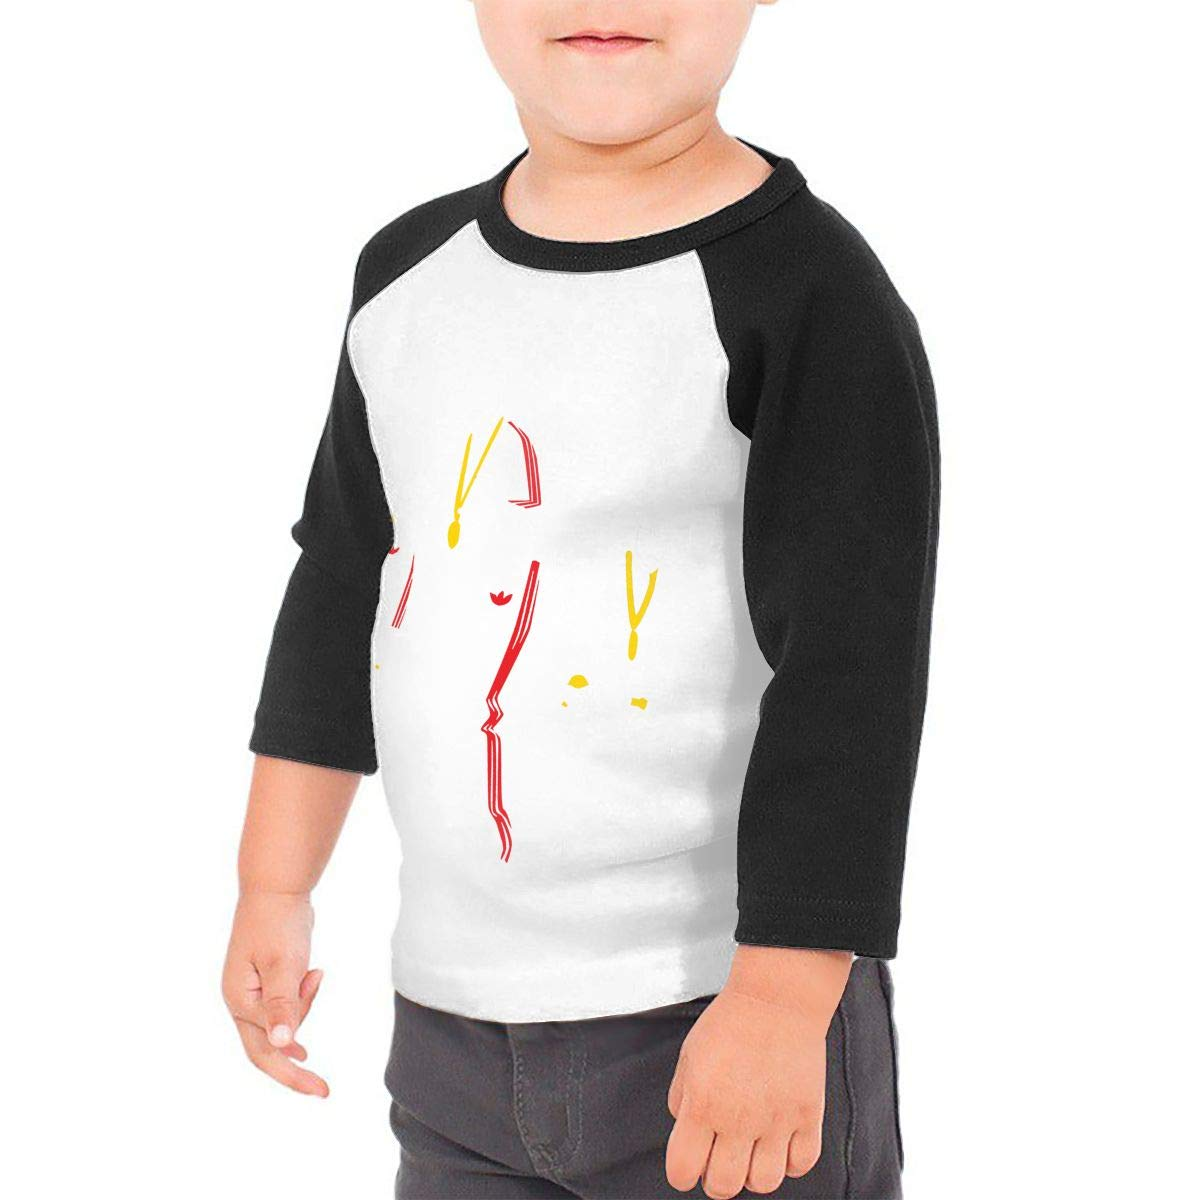 Nothing Better Than Hip Hop Music Unisex Toddler Baseball Jersey Contrast 3//4 Sleeves Tee